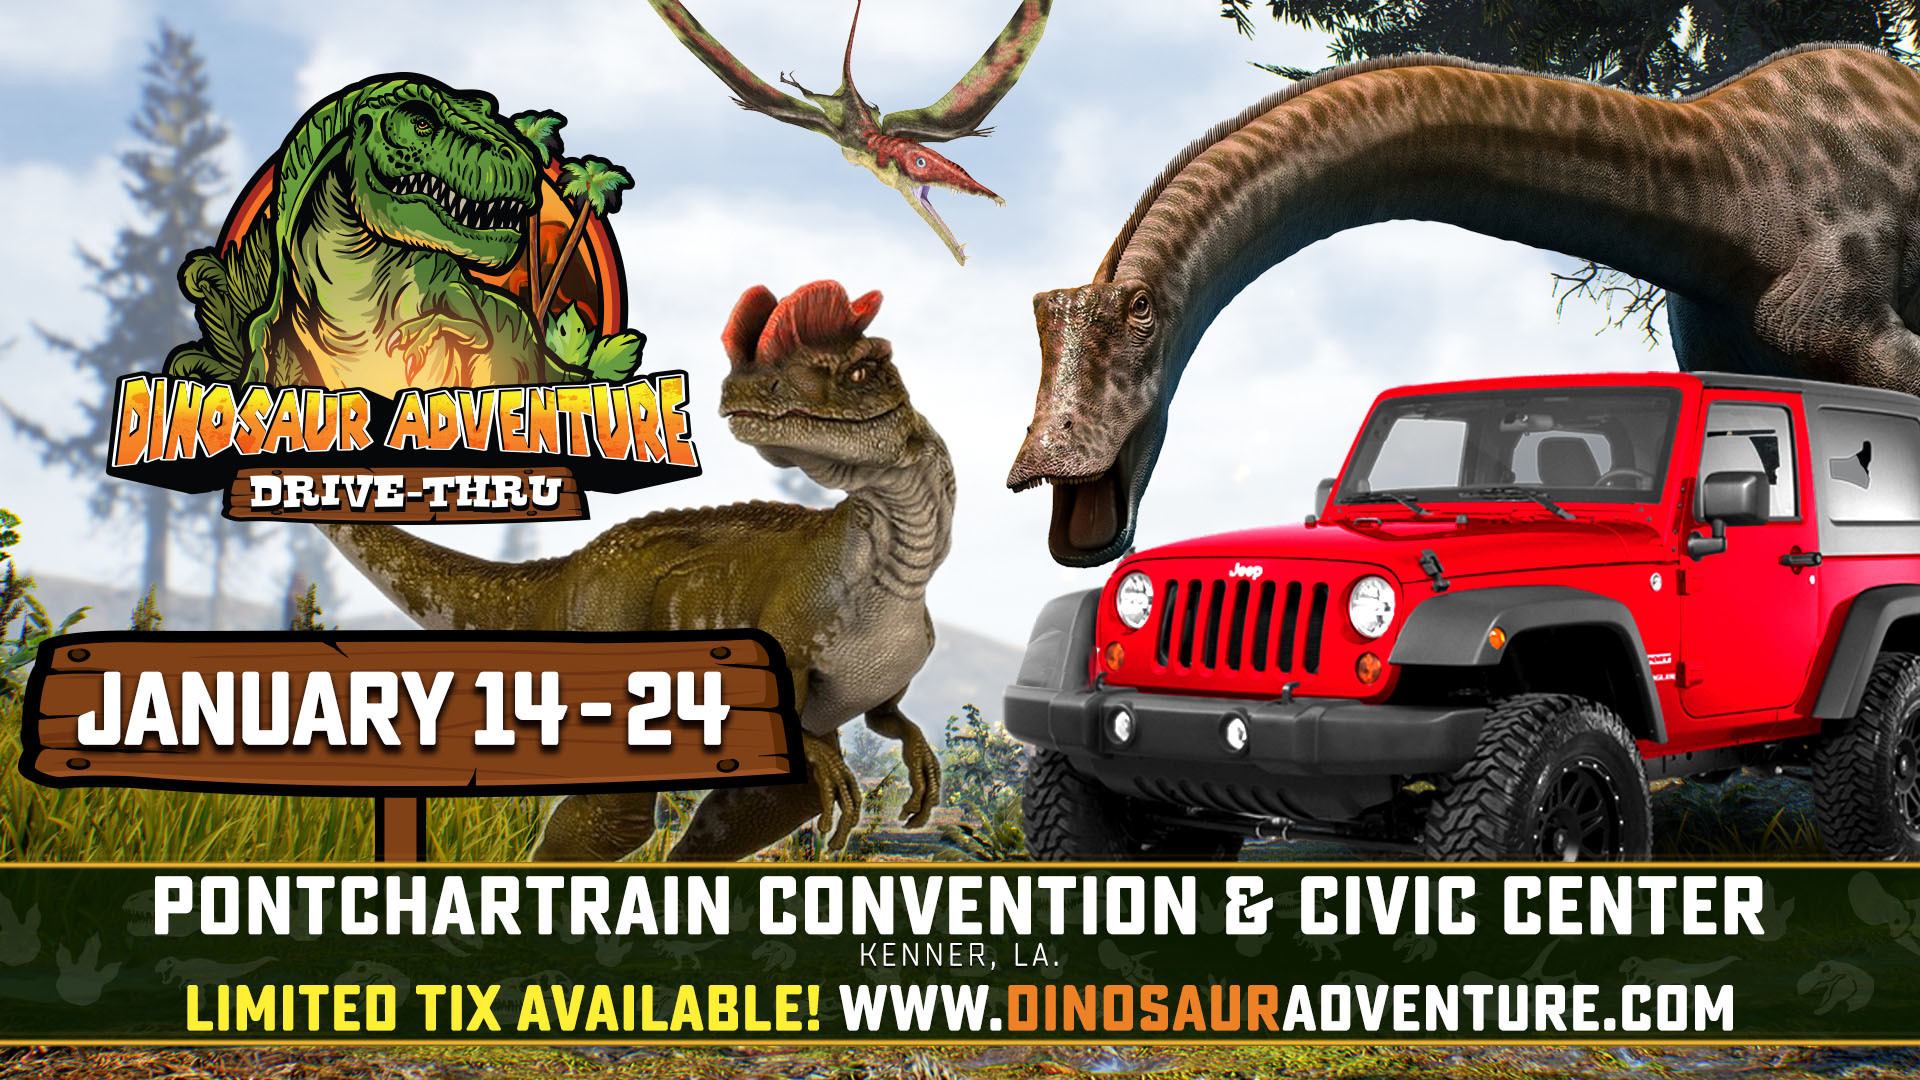 Bring the entire family to Dinosaur Adventure Drive-Thru where you can take a prehistoric tour featuring 80 moving breathing life sized dinosaurs. 2 Weekends only Jan 14 to Jan 24 - 2021